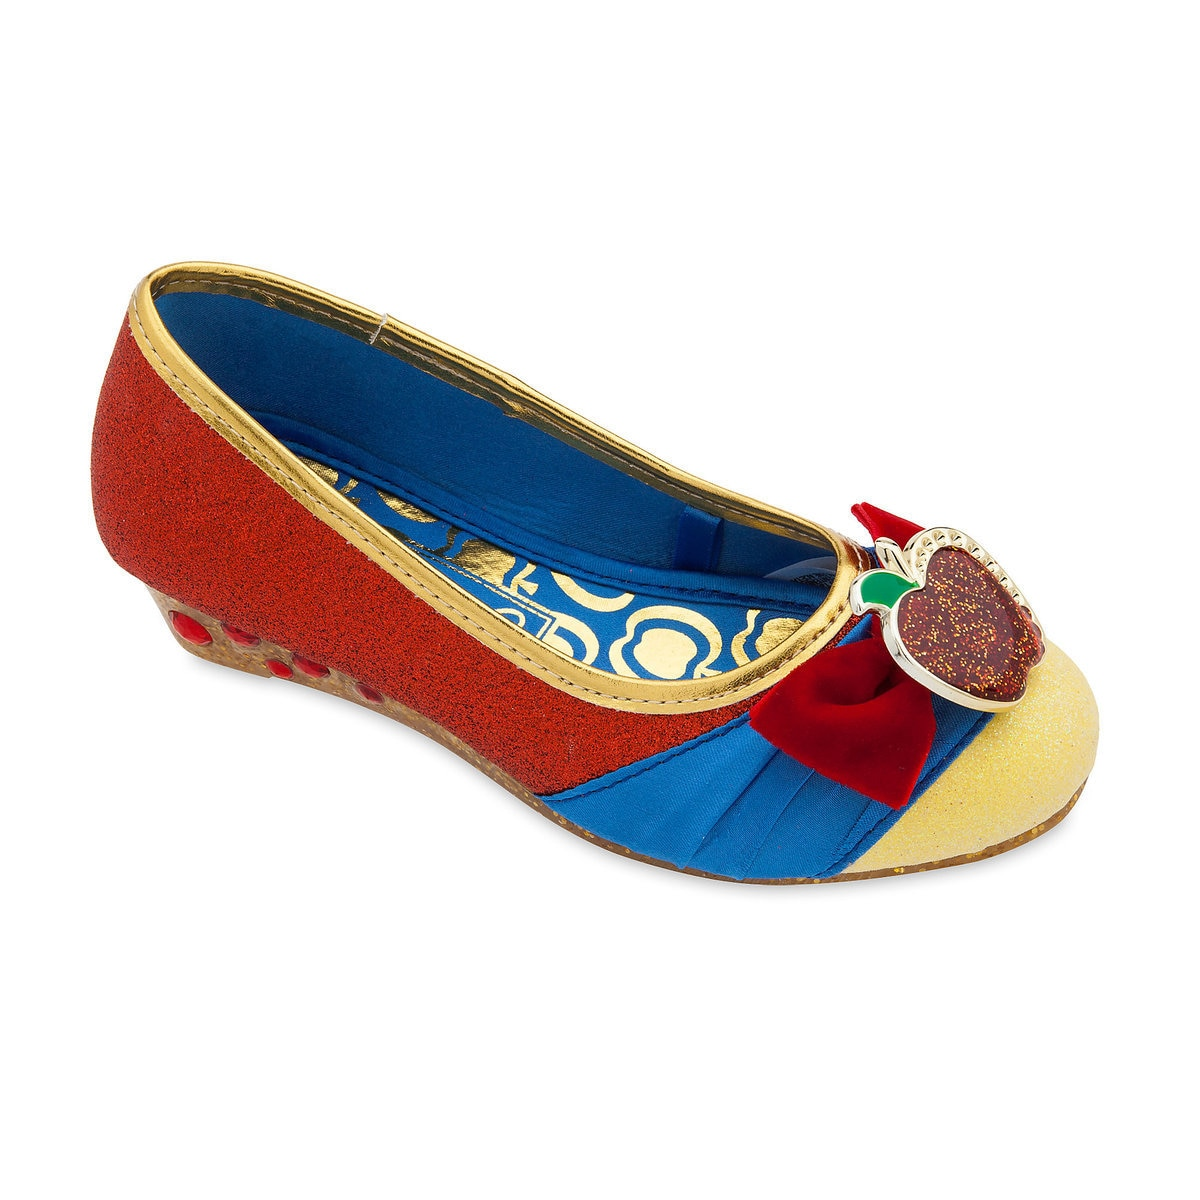 3170f03c0cc0 Product Image of Snow White Costume Shoes for Kids   1